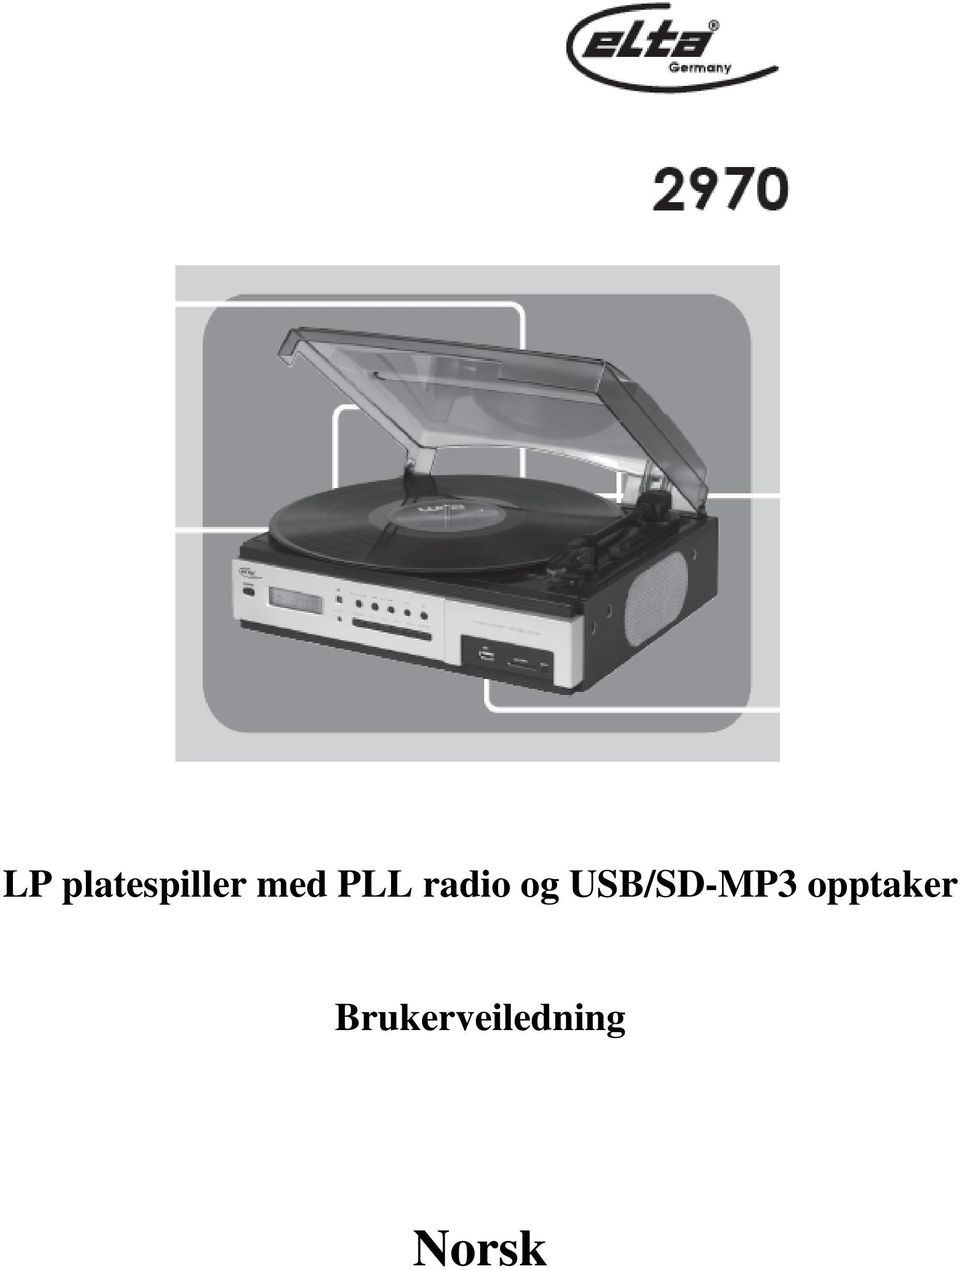 USB/SD-MP3